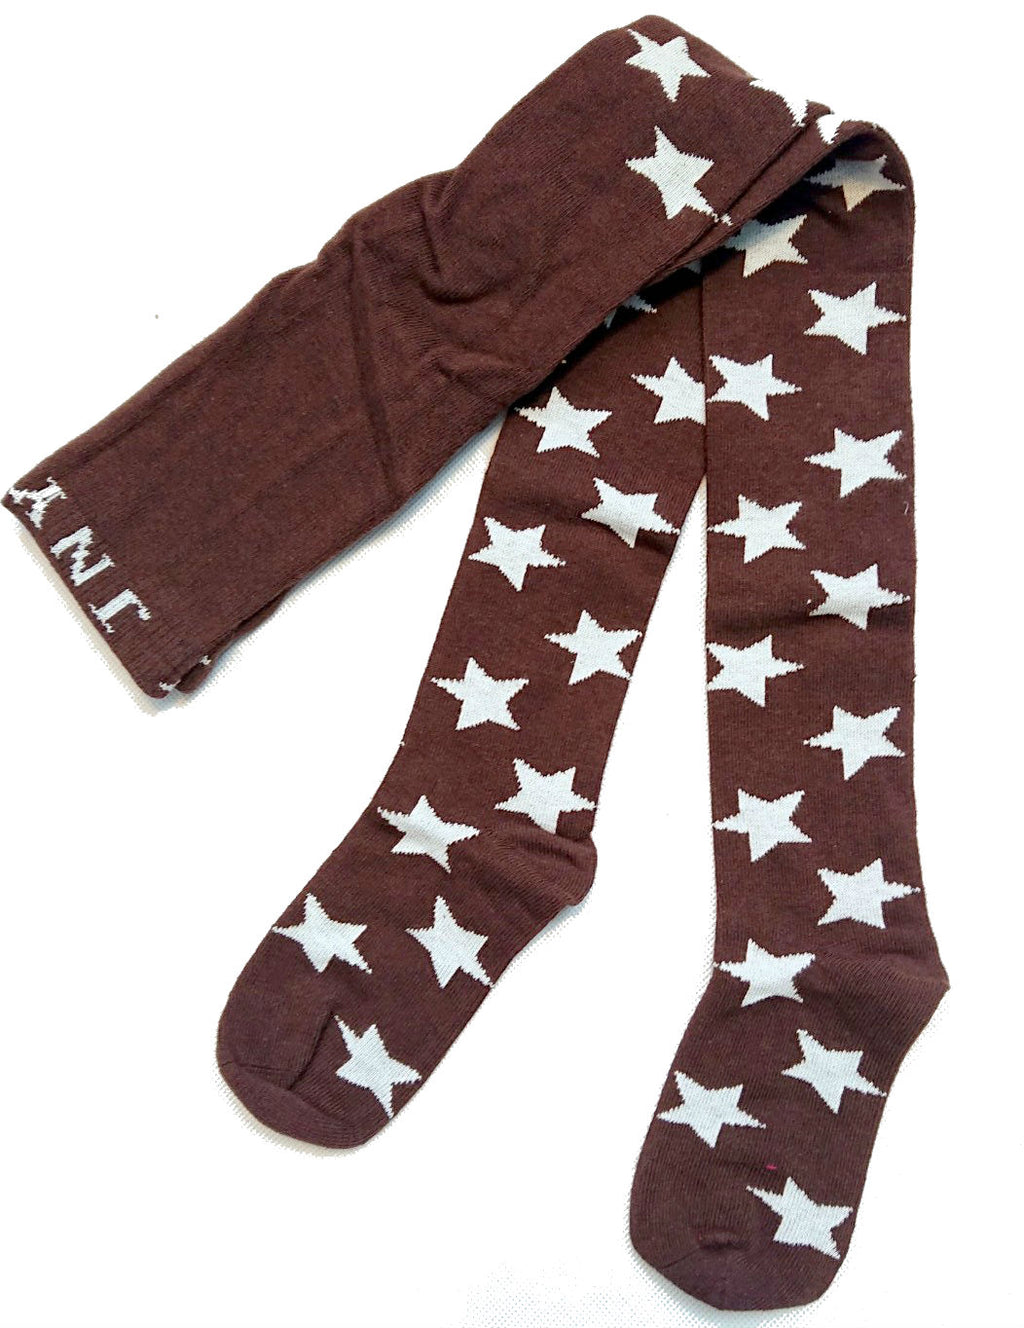 JNY tights BROWN/STARS